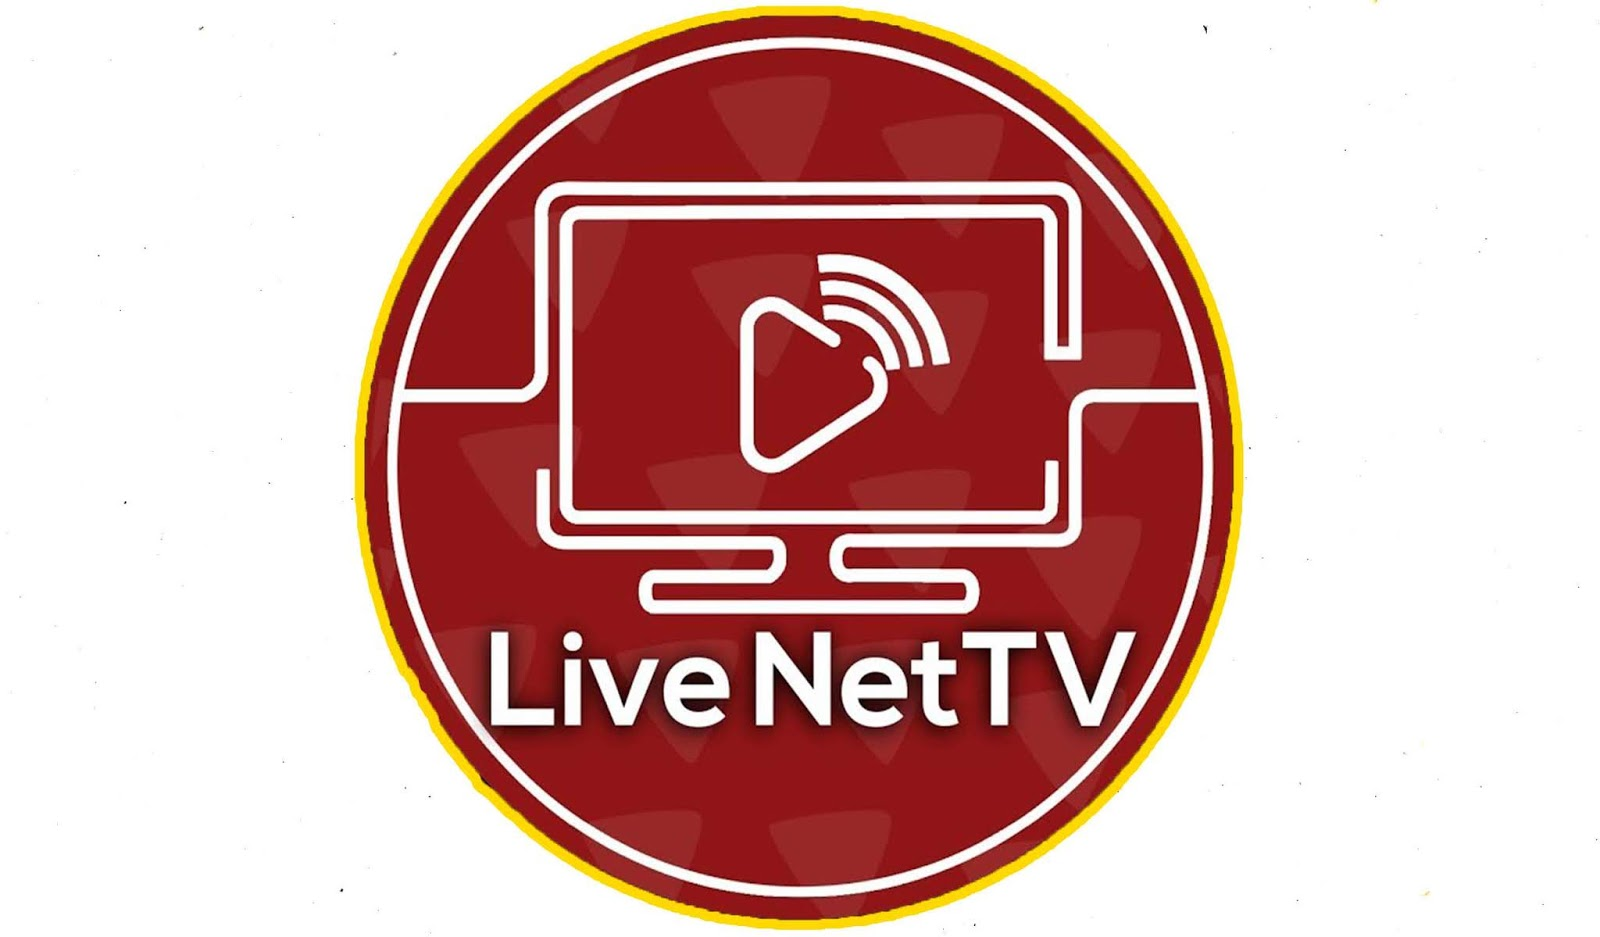 Live NetTv Apk Download For Android Mobile |